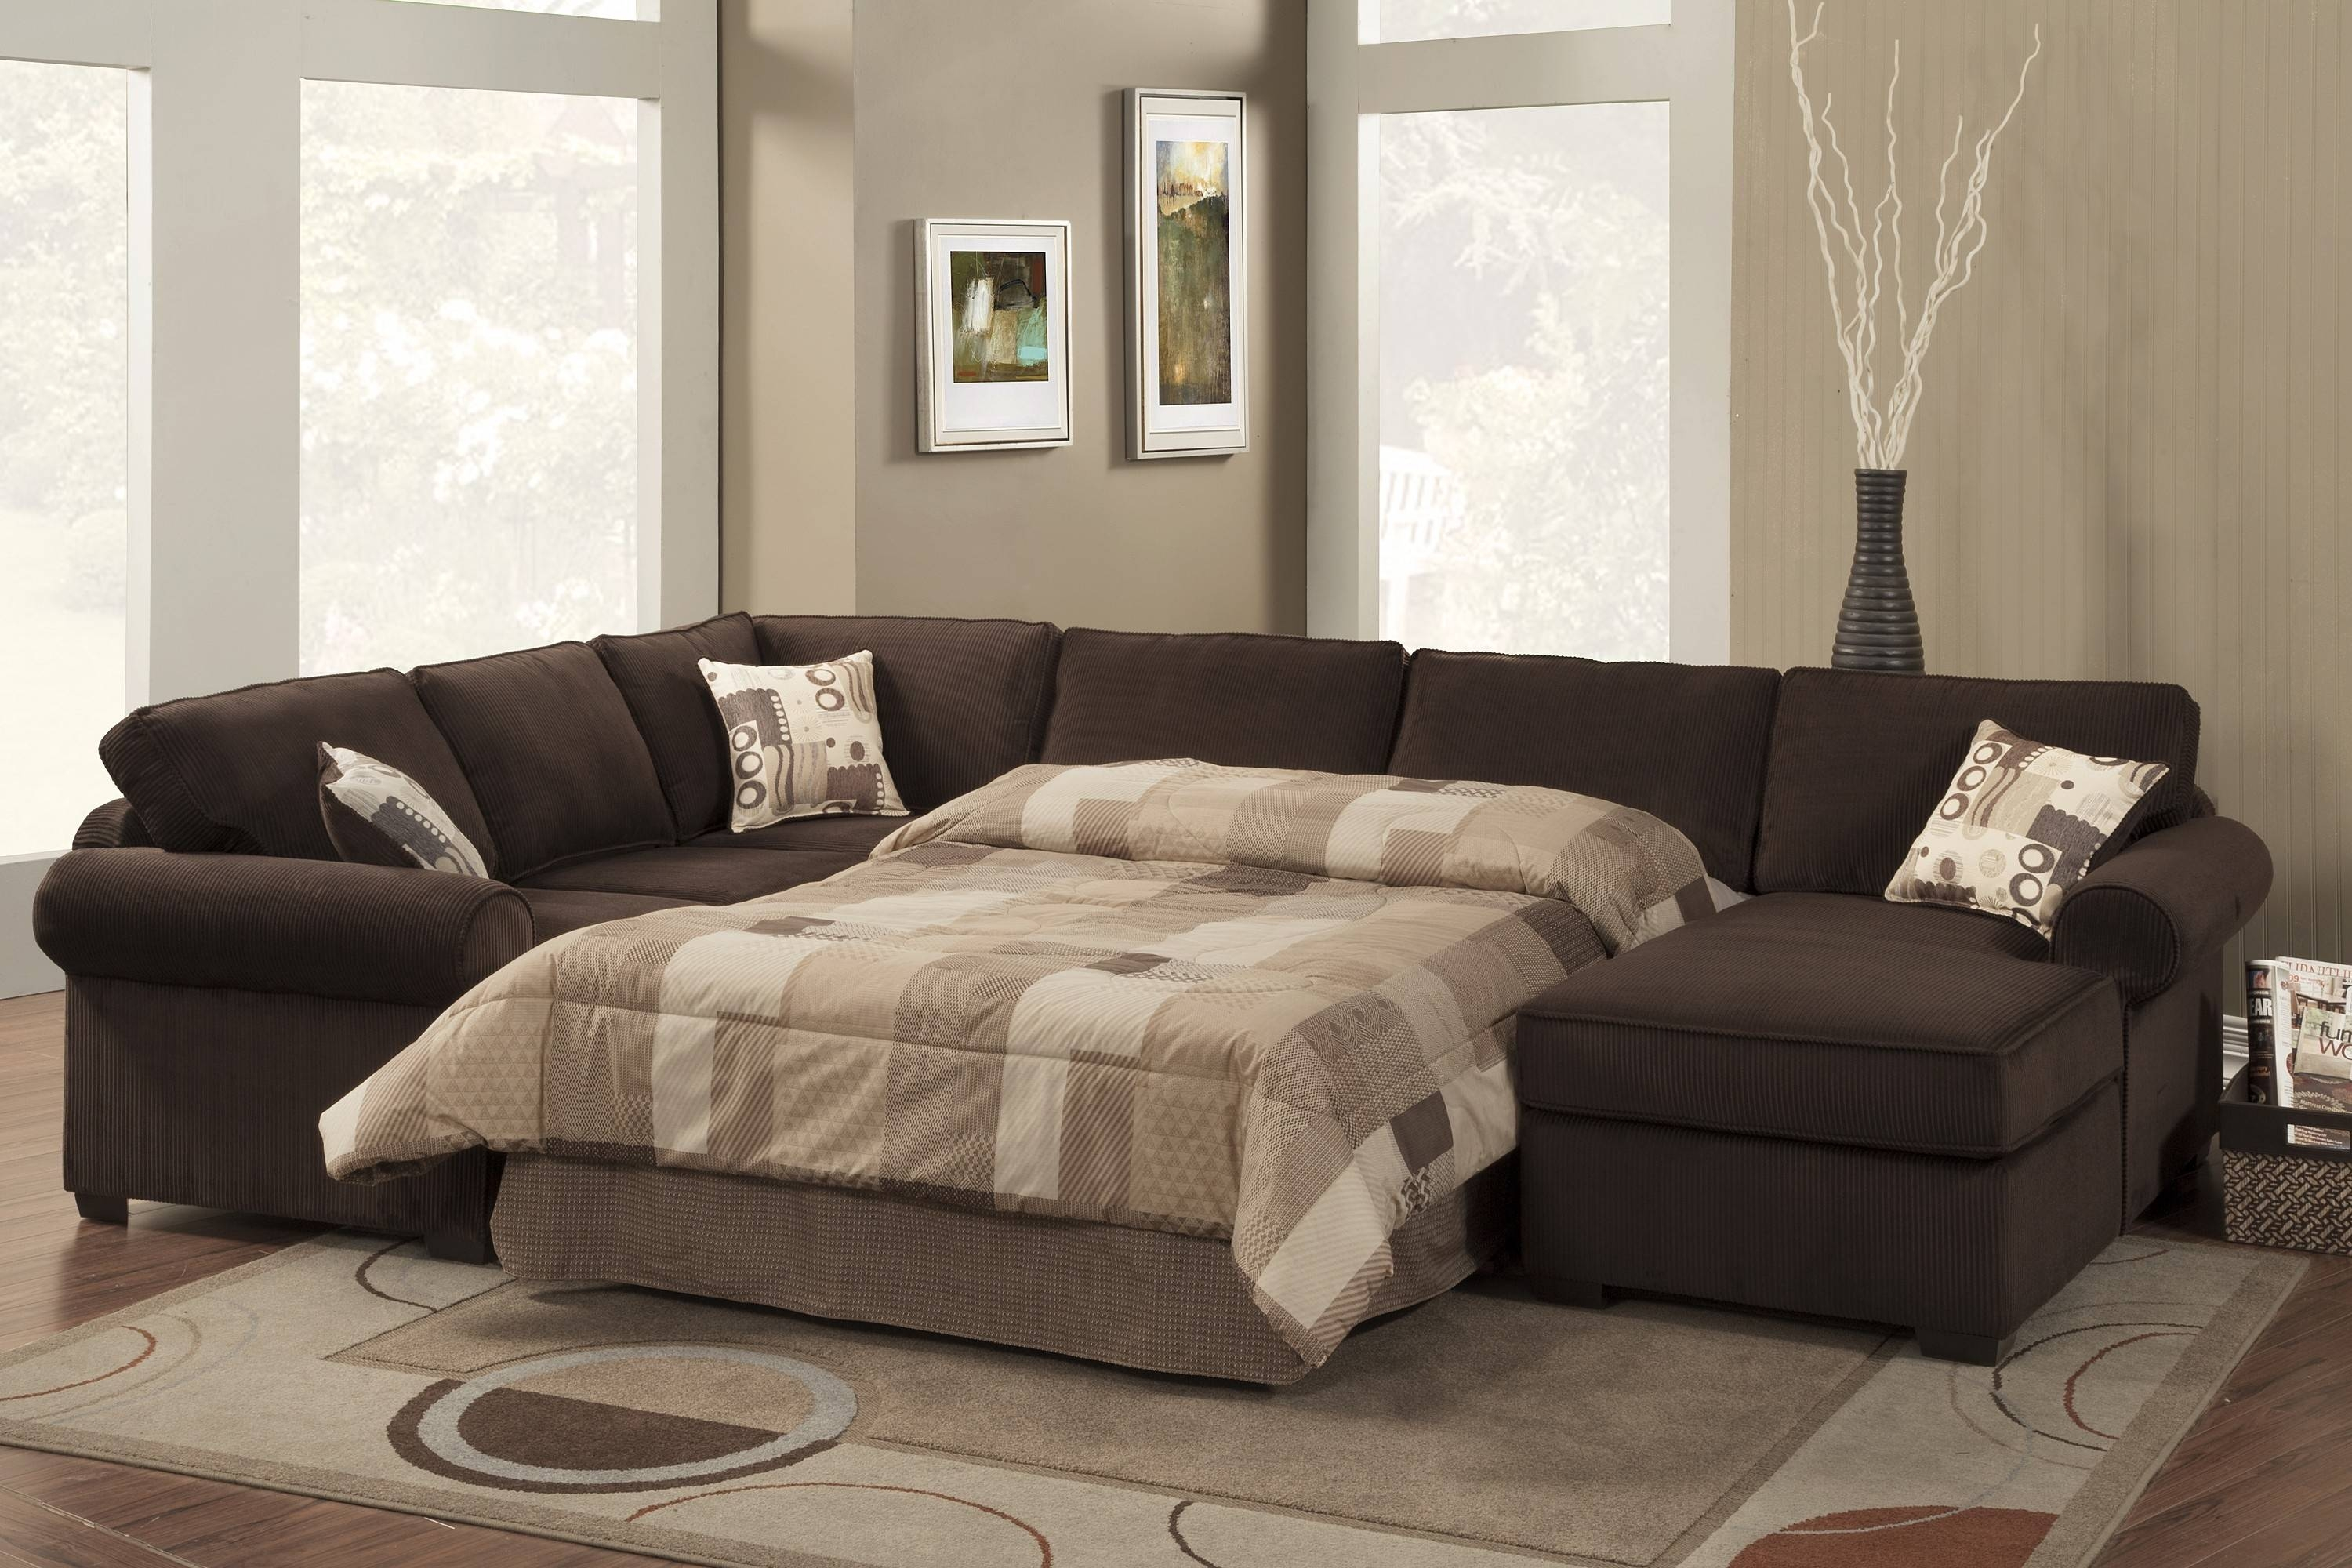 Sofa: Comfort And Style Is Evident In This Dynamic With Tufted For Sectional Sleeper Sofas With Chaise (View 19 of 30)